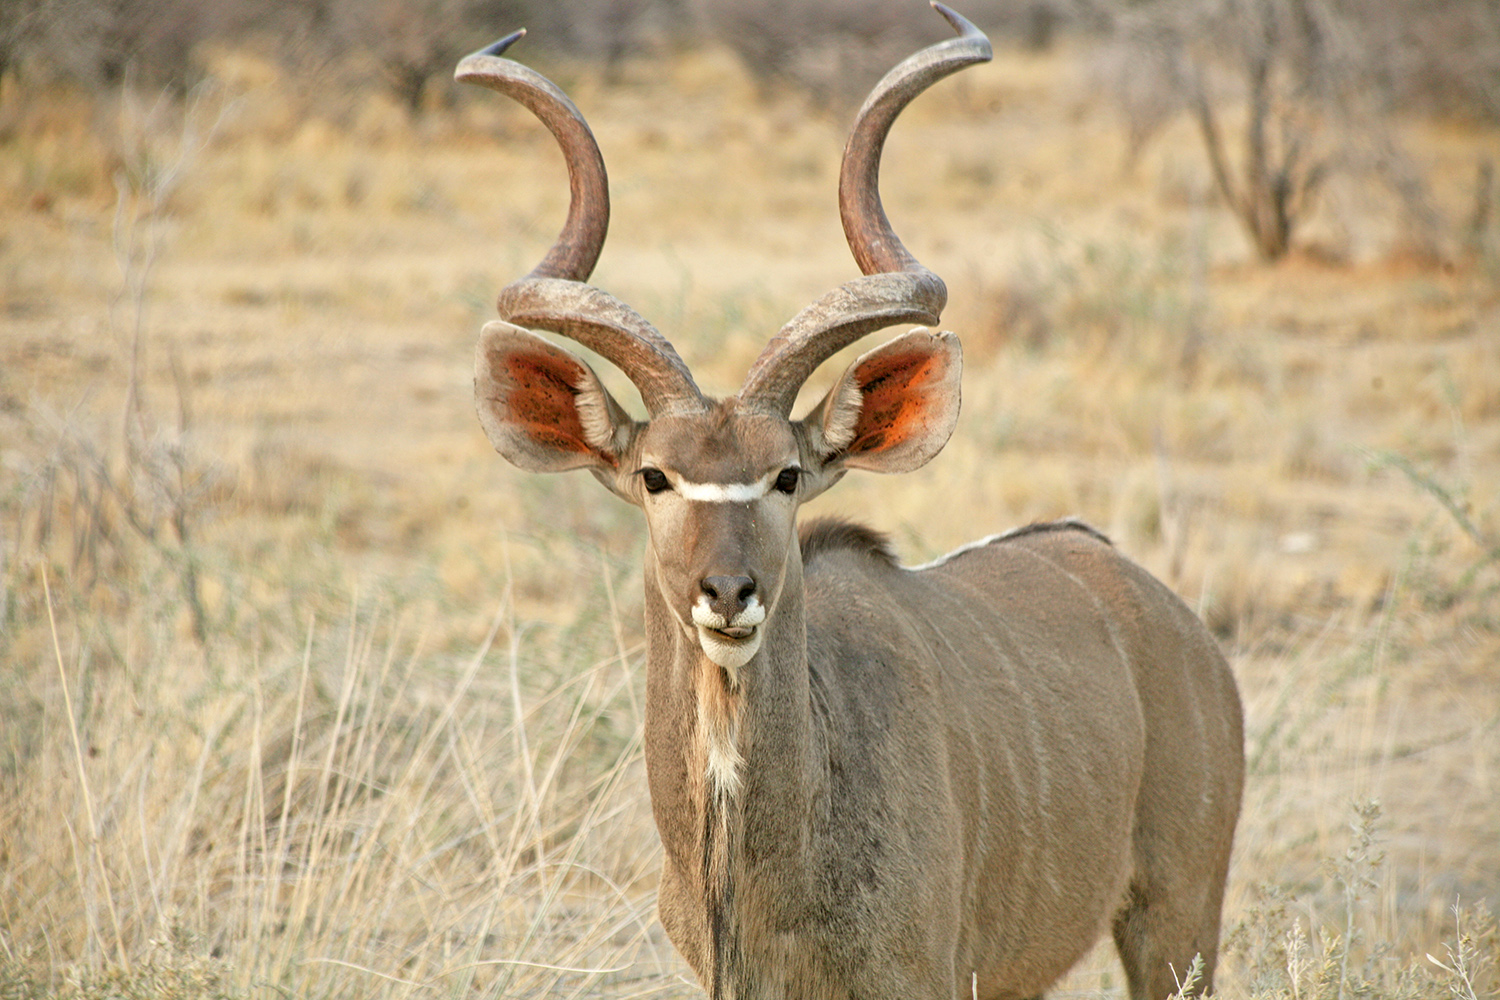 Etosha-nationa-park-safari-watering-eland